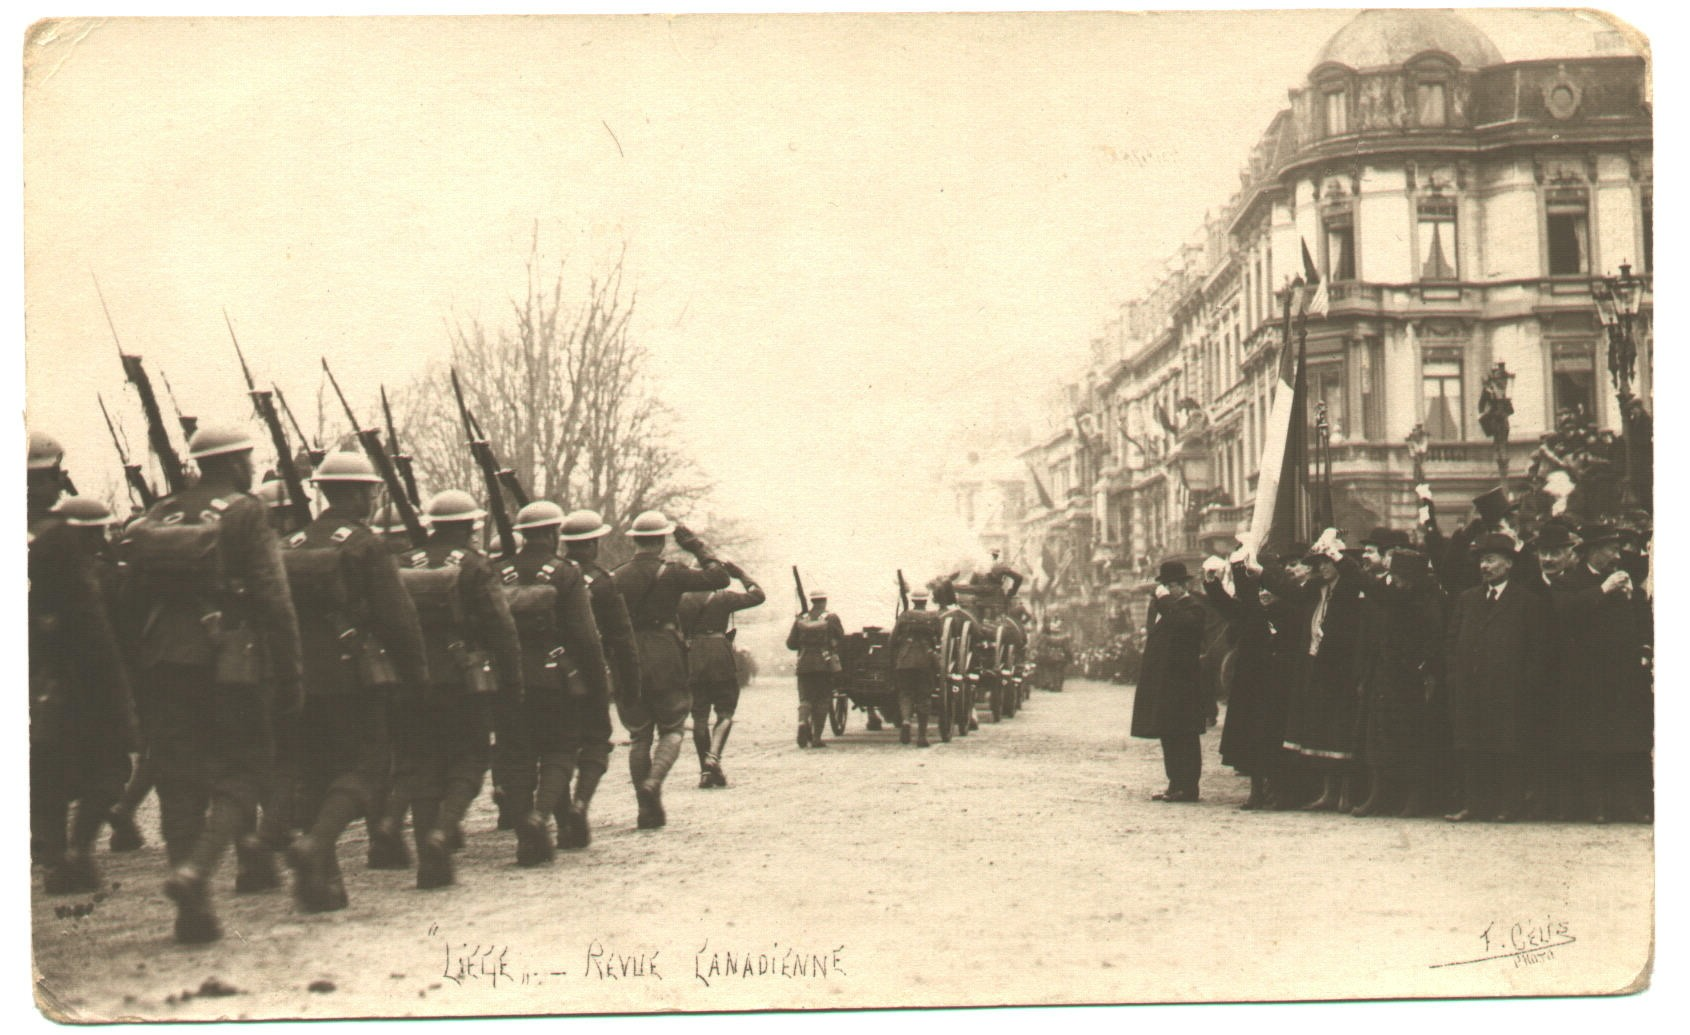 The 19th Battalion marching through Liège, Belgium